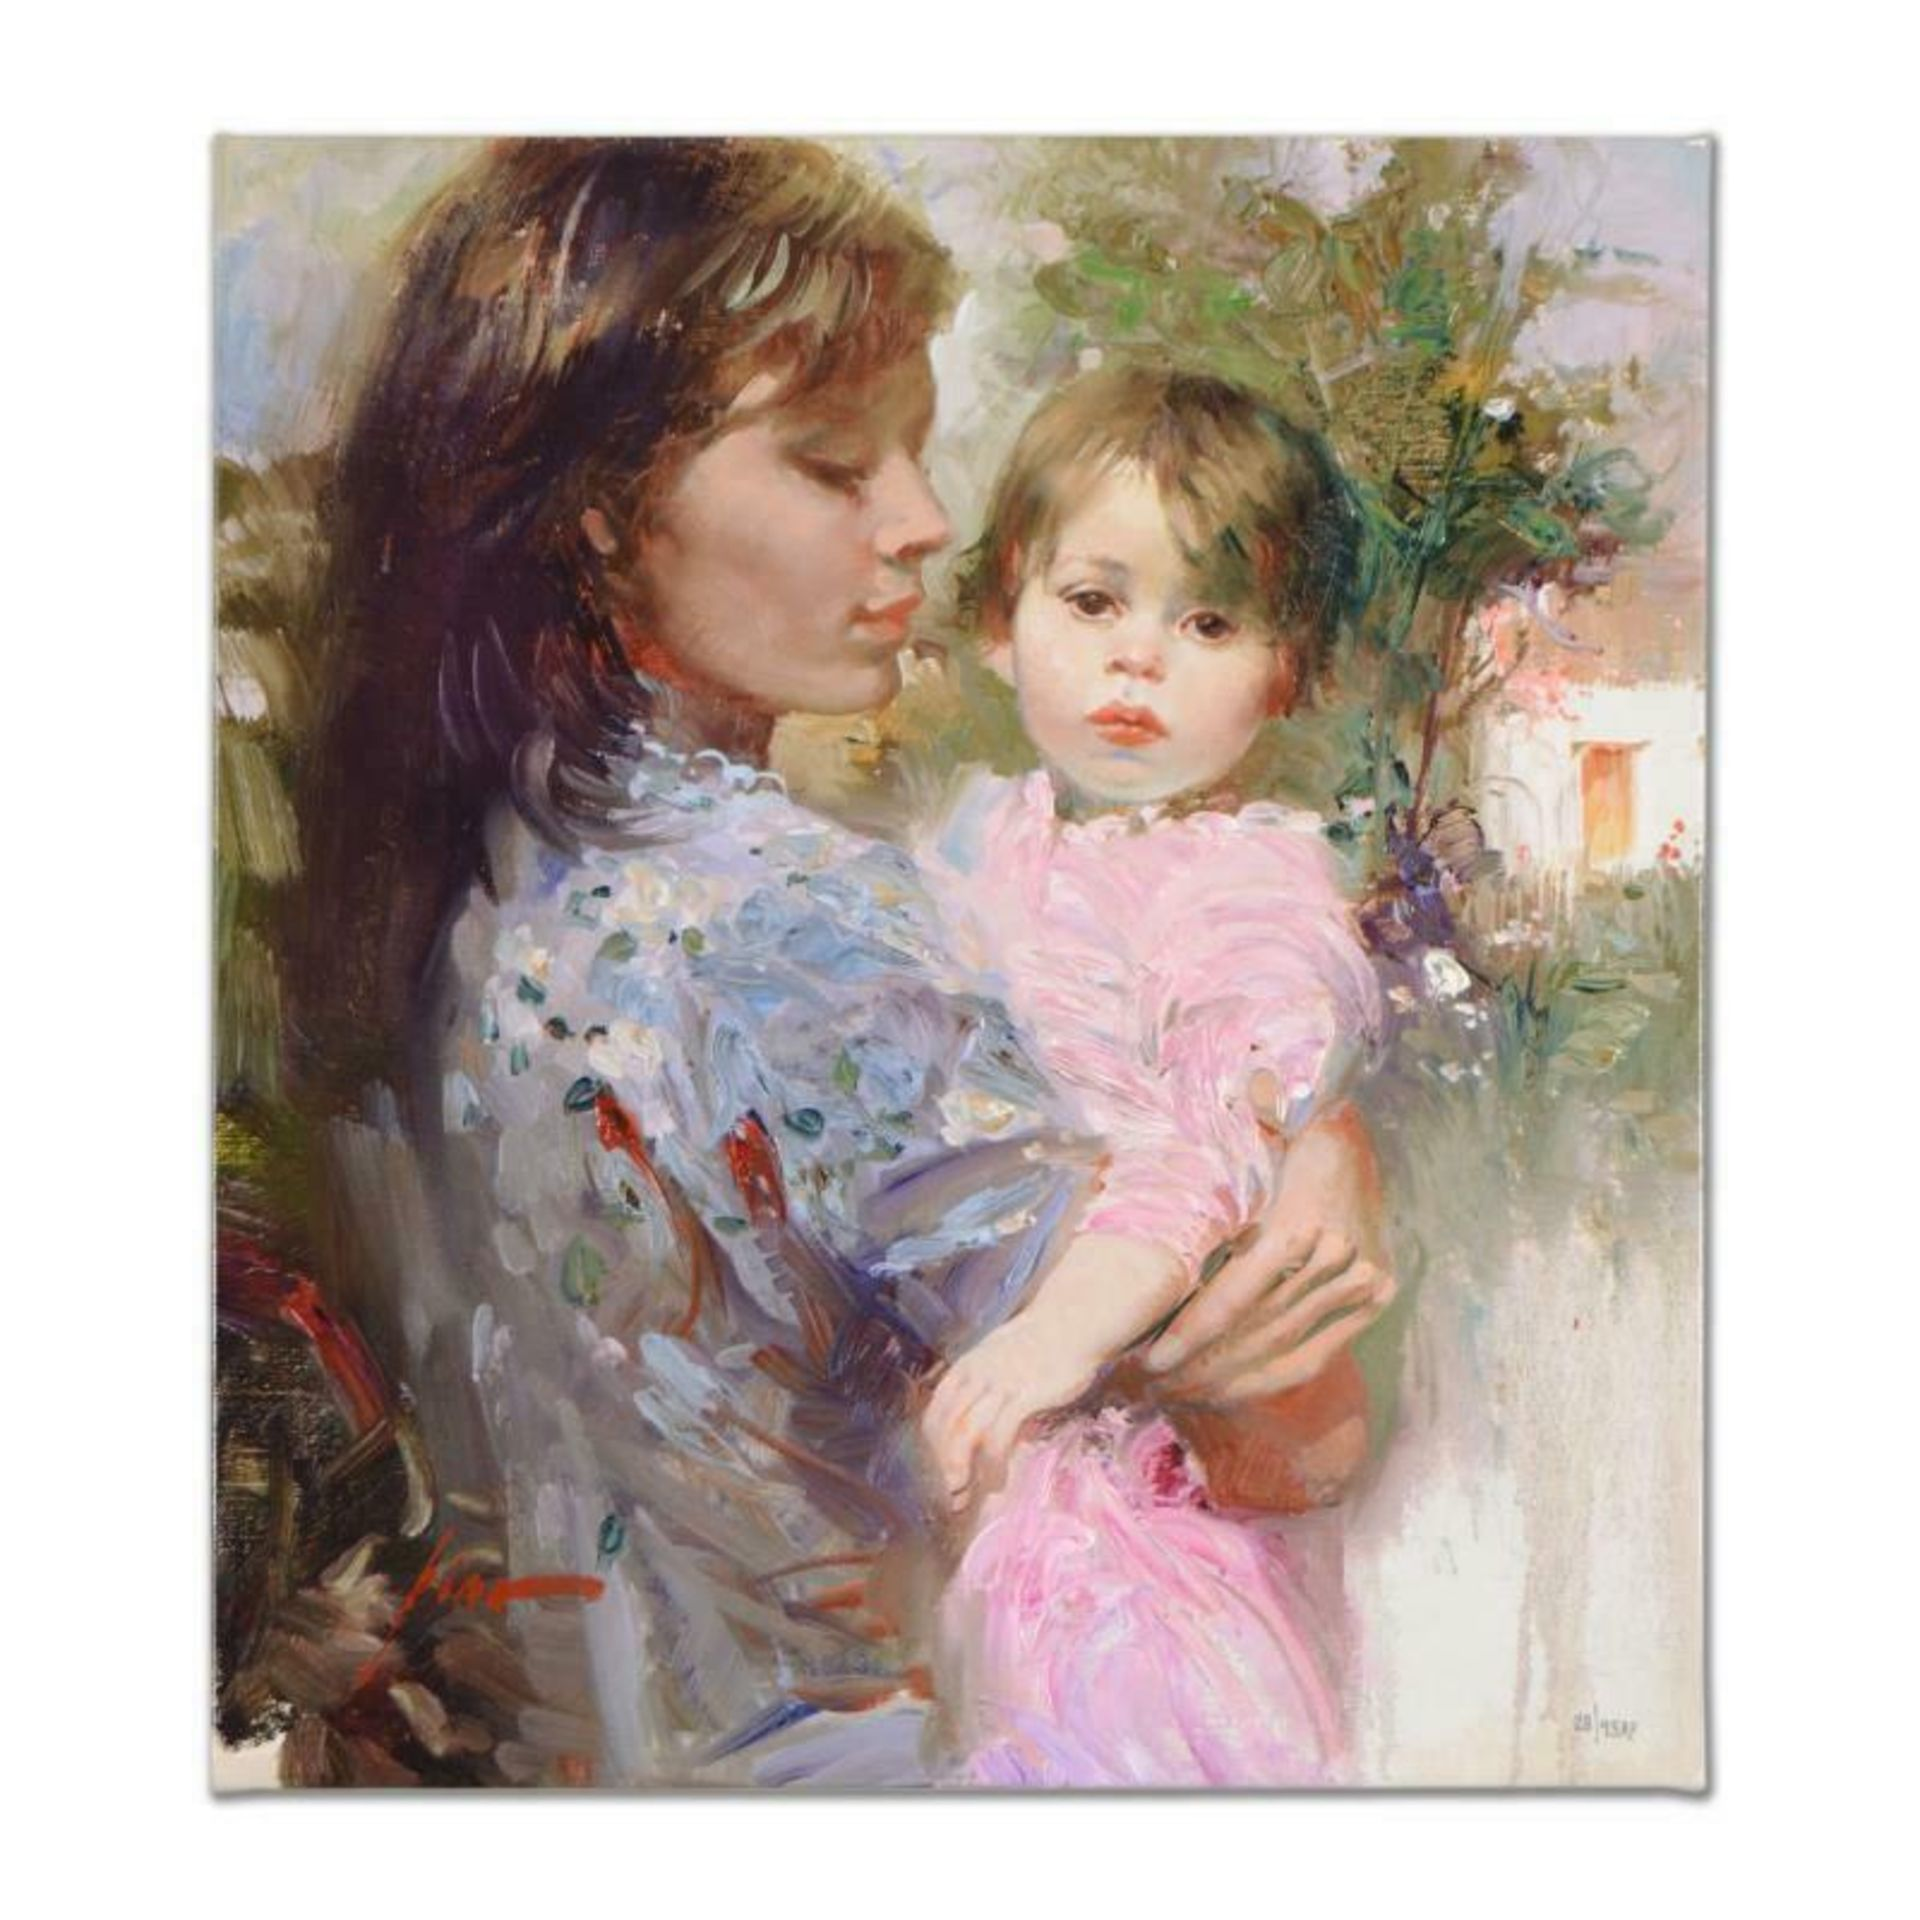 """Pino (1939-2010), """"Little Cherub"""" Artist Embellished Limited Edition on Canvas,"""